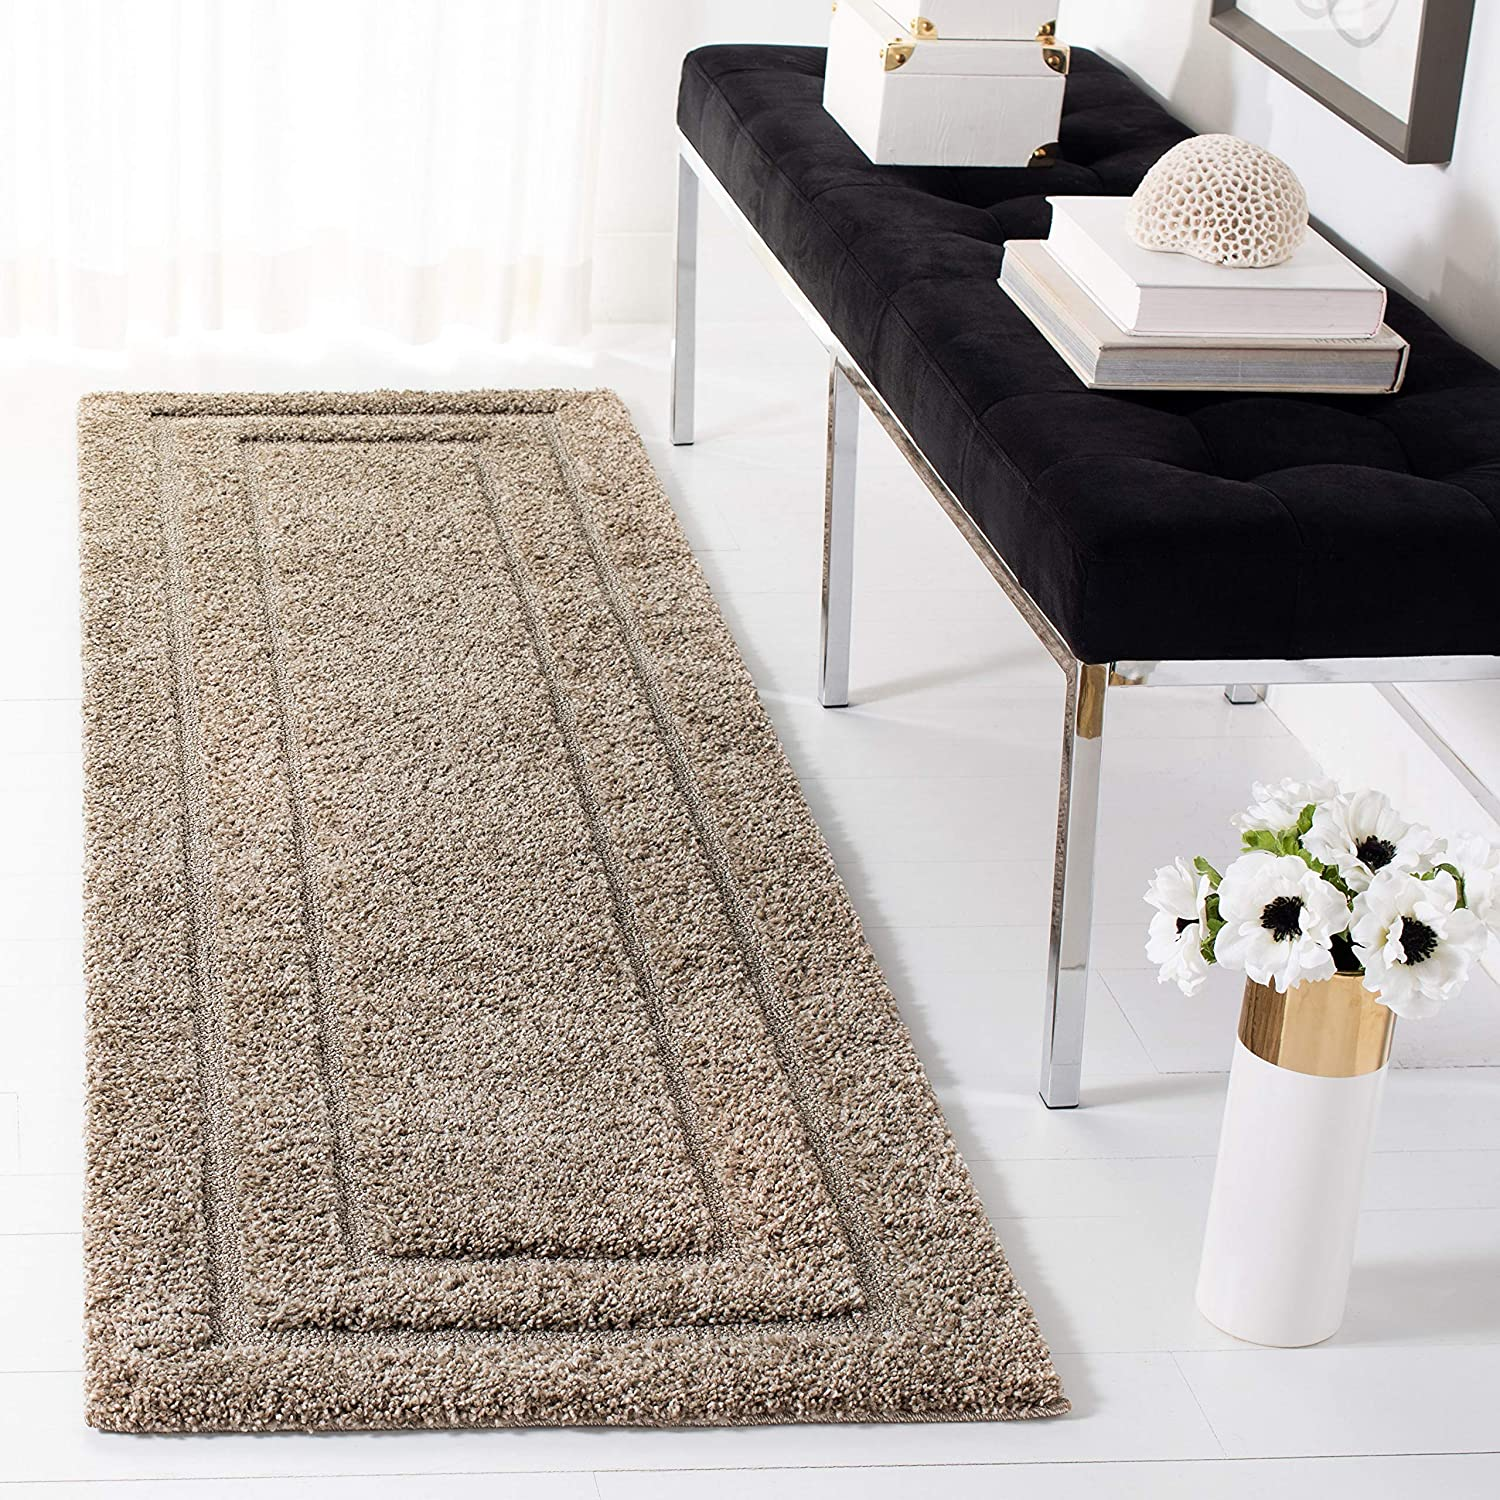 SAFAVIEH Florida Shag Collection SG454 Border Non-Shedding Living Room Bedroom Dining Room Entryway Plush 1.2-inch Thick Runner, 2'3